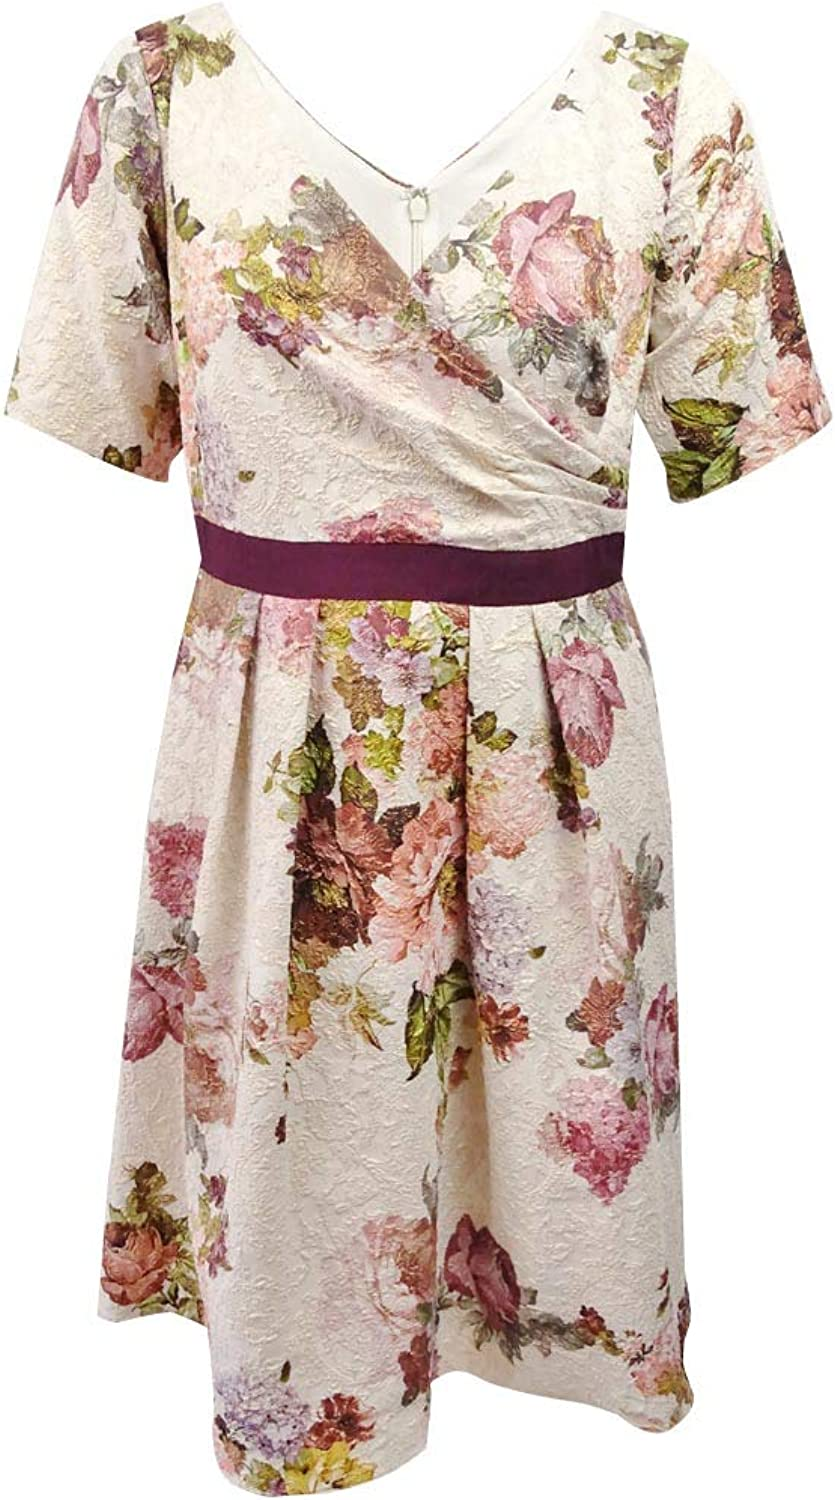 Adrianna Papell Womens Plus Metallic Floral Print Special Occasion Dress